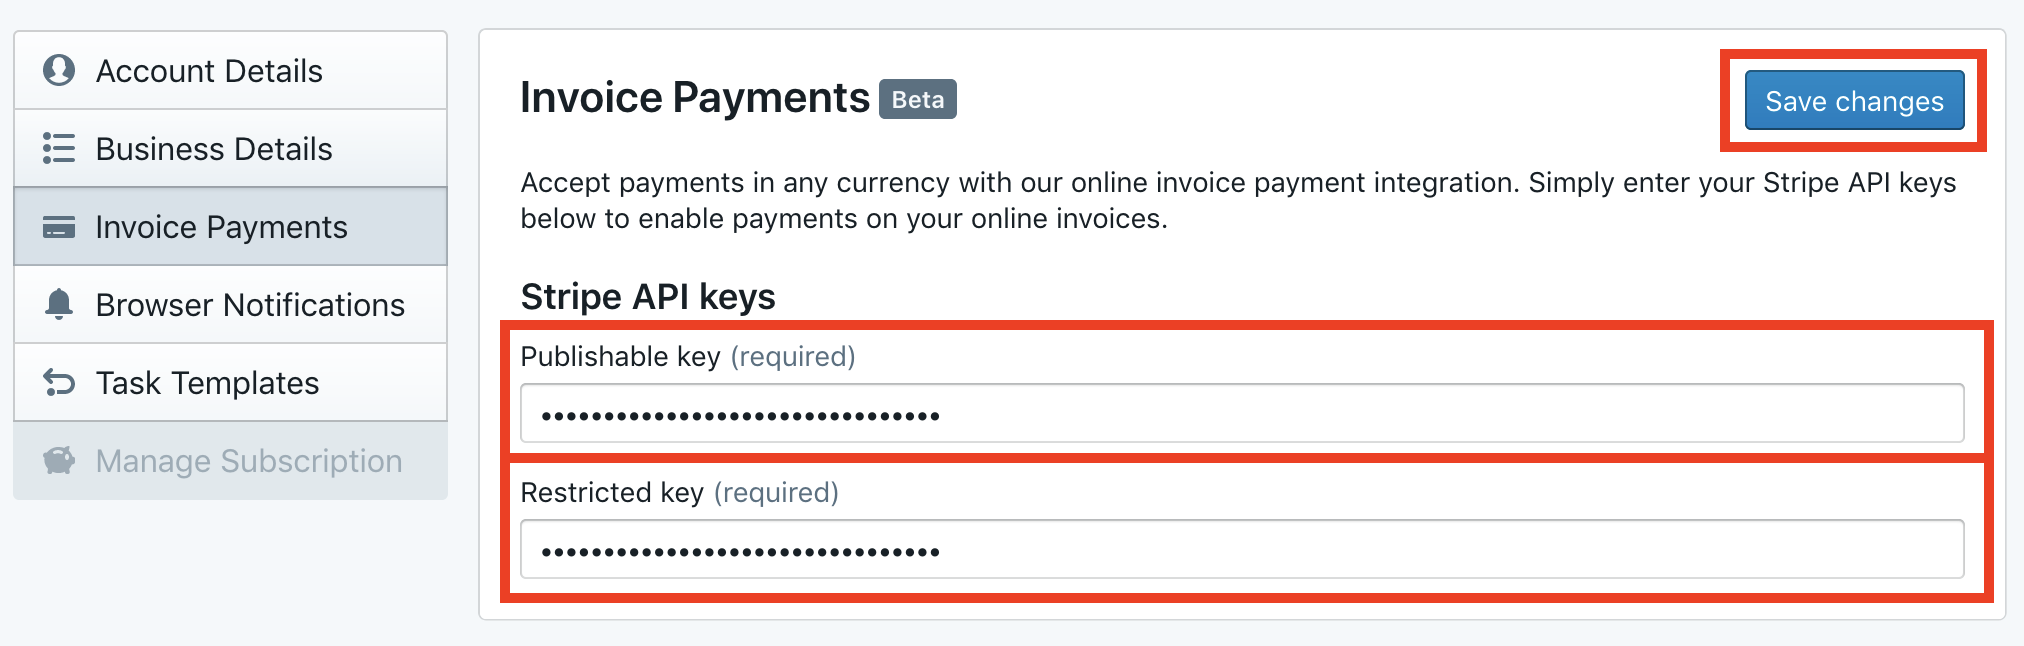 Invoice Payments | RemoteOne Guide